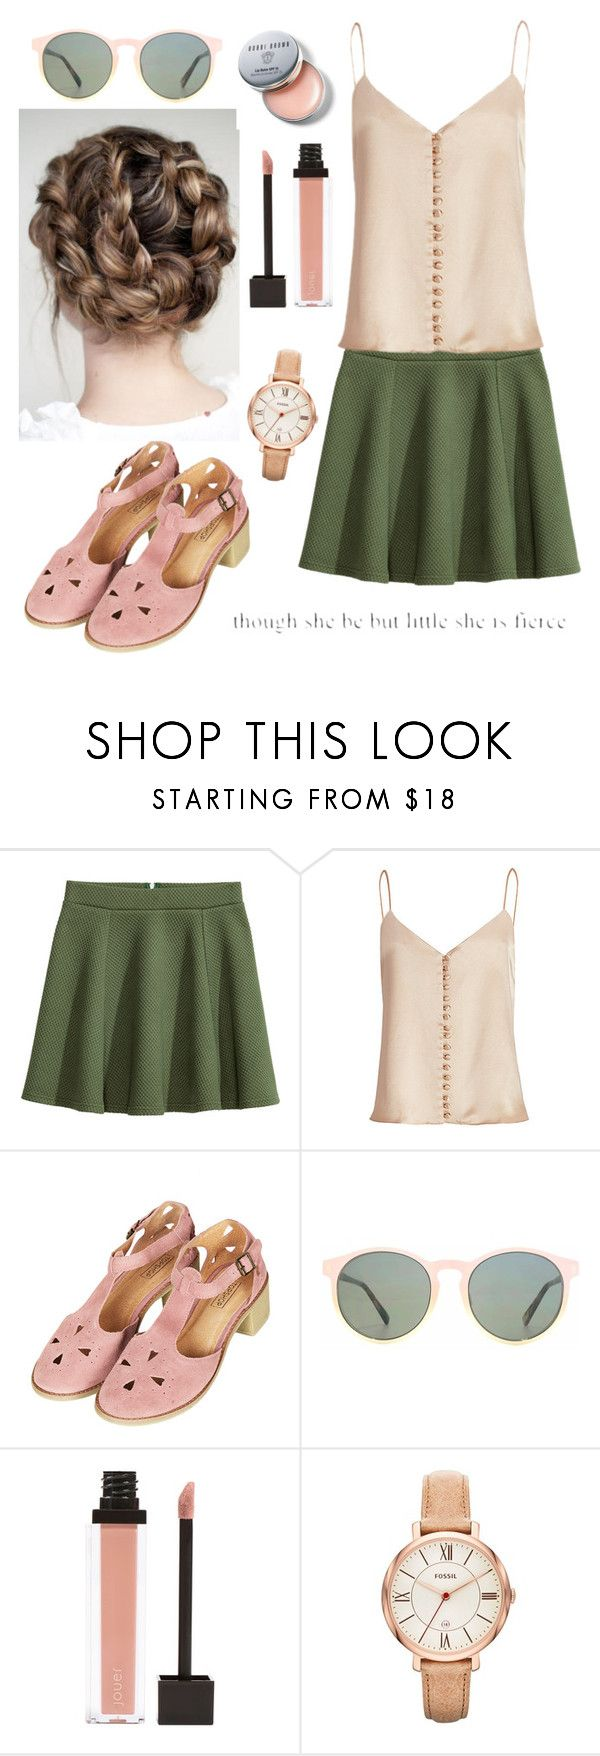 """""""Untitled #189"""" by dancingqueen31903 ❤ liked on Polyvore featuring H&M, Topshop, HOOK LDN, Jouer, FOSSIL and Bobbi Brown Cosmetics"""